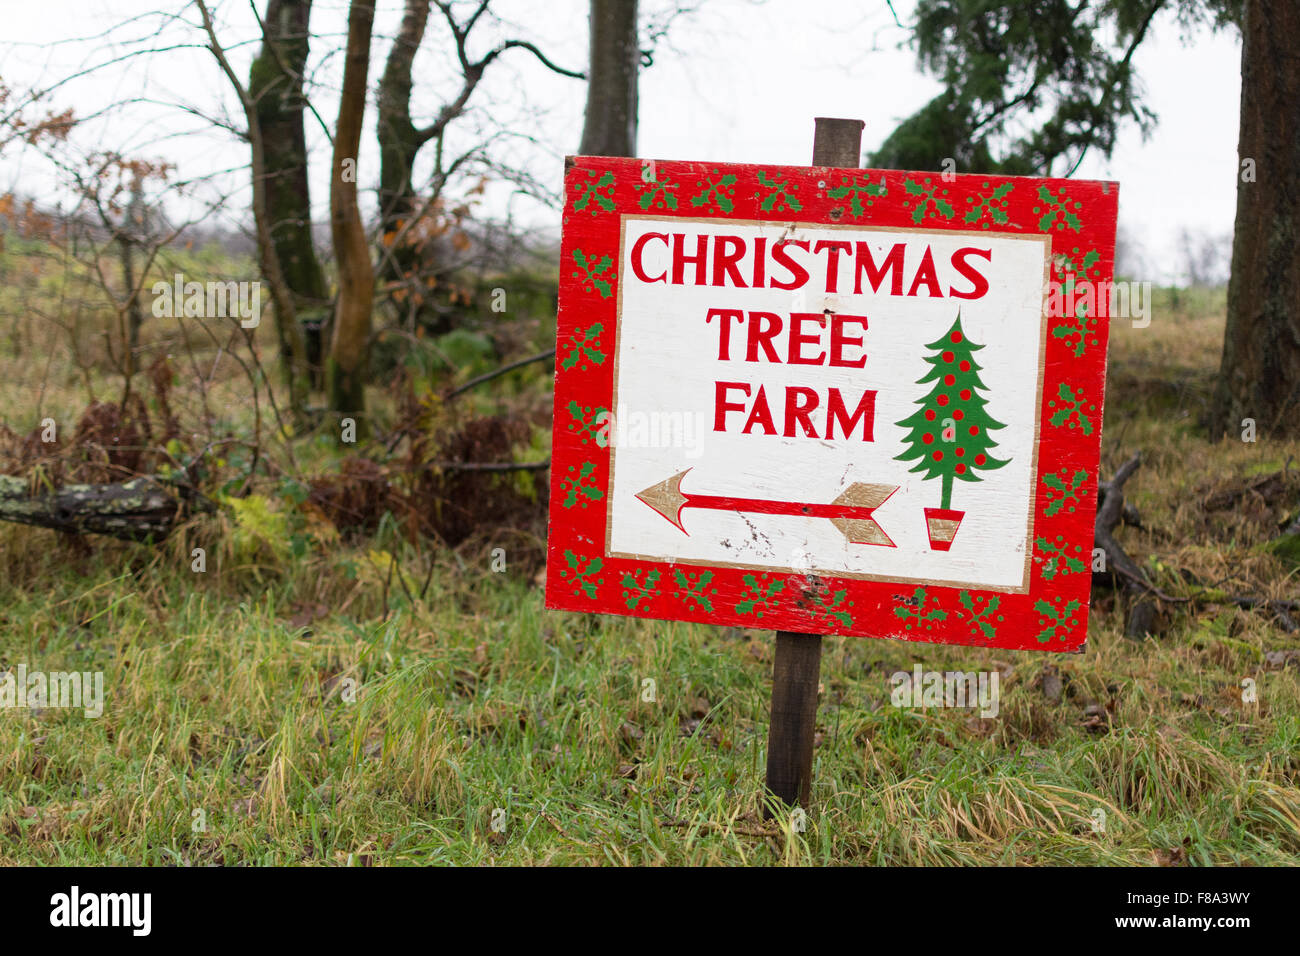 Christmas Tree Farm sign pointing the way to Wester Auchentroig Christmas Tree Farm, Buchlyvie, Stirlingshire, Scotland, - Stock Image